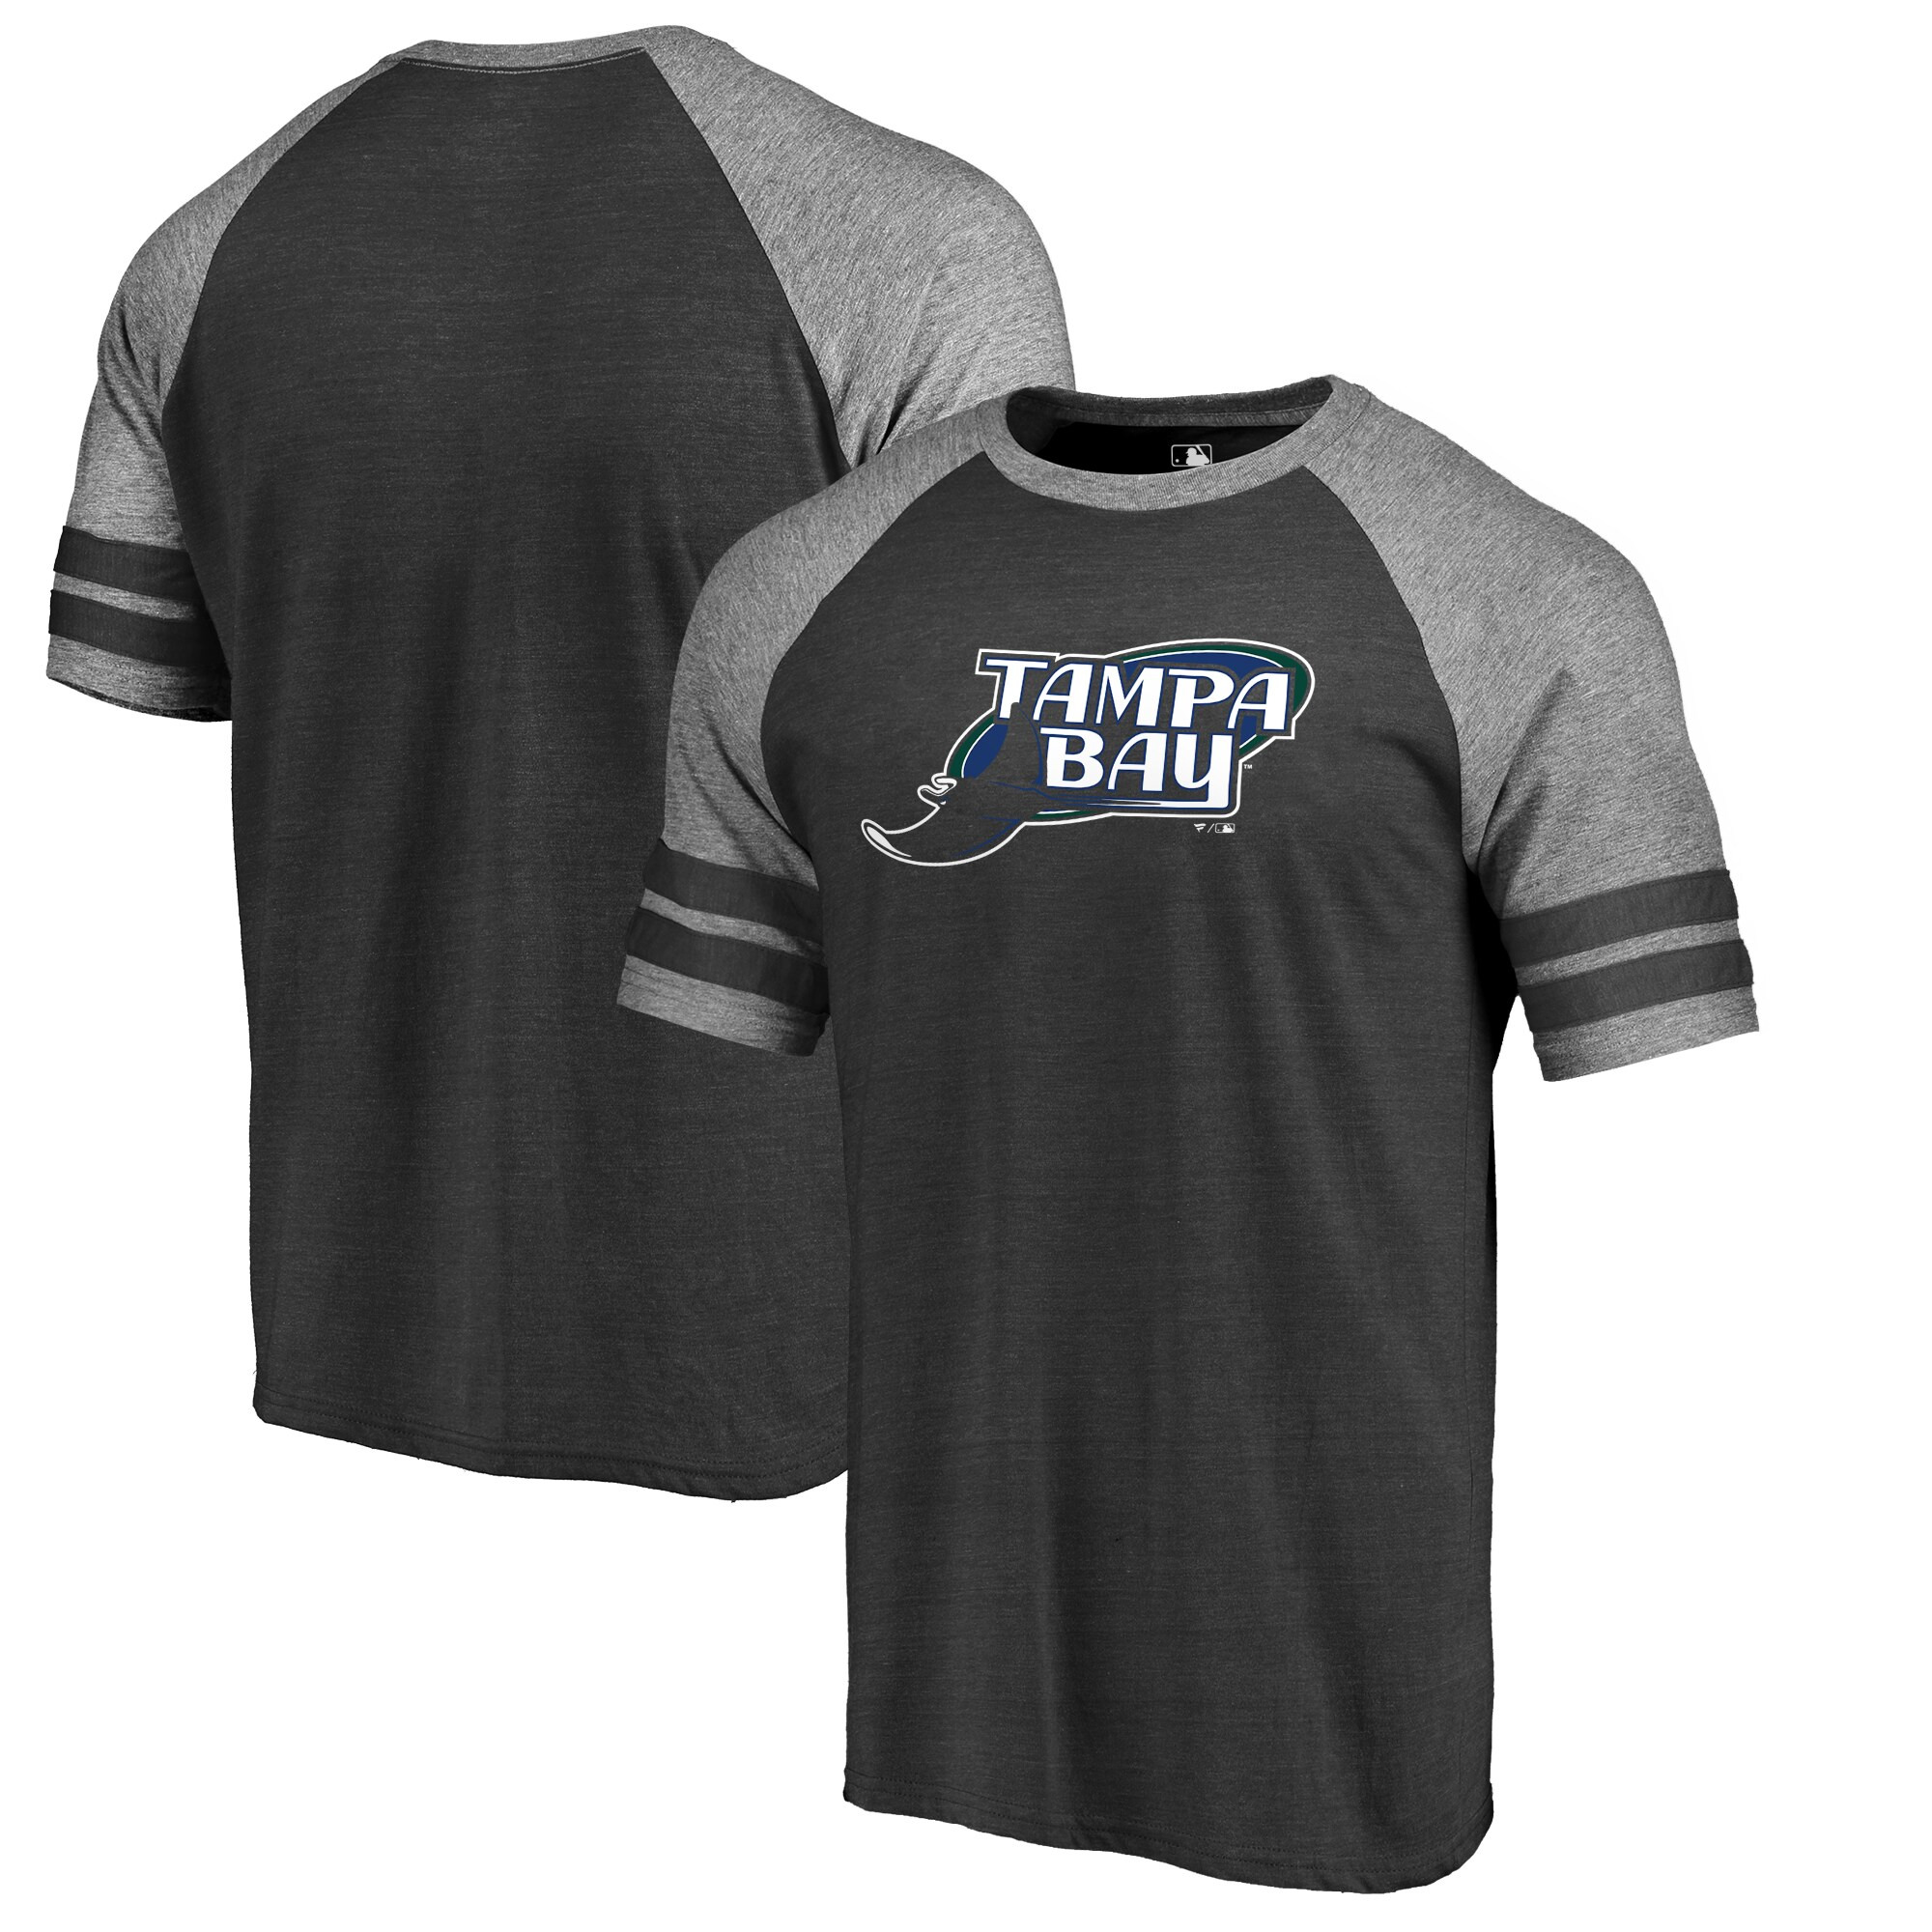 Tampa Bay Rays Fanatics Branded Huntington Cooperstown Collection Tri-Blend T-Shirt - Black